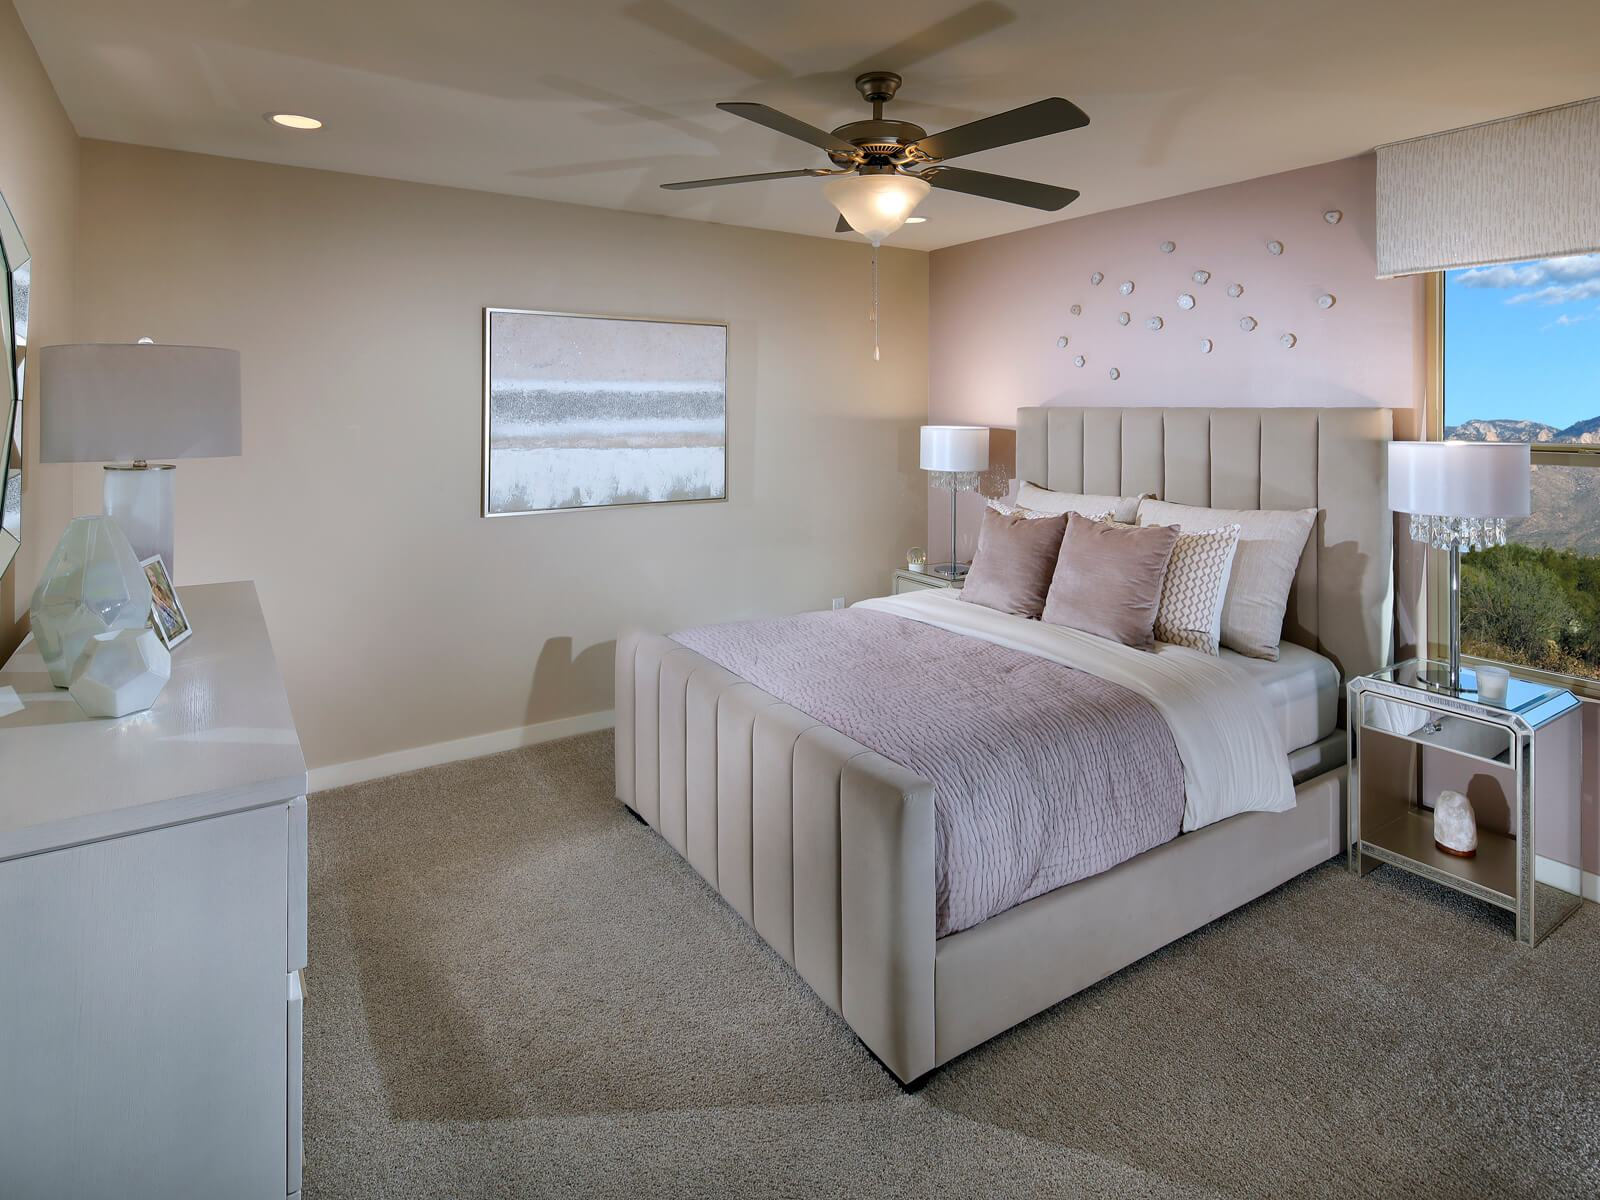 Bedroom featured in the Promenade By Meritage Homes in Tucson, AZ